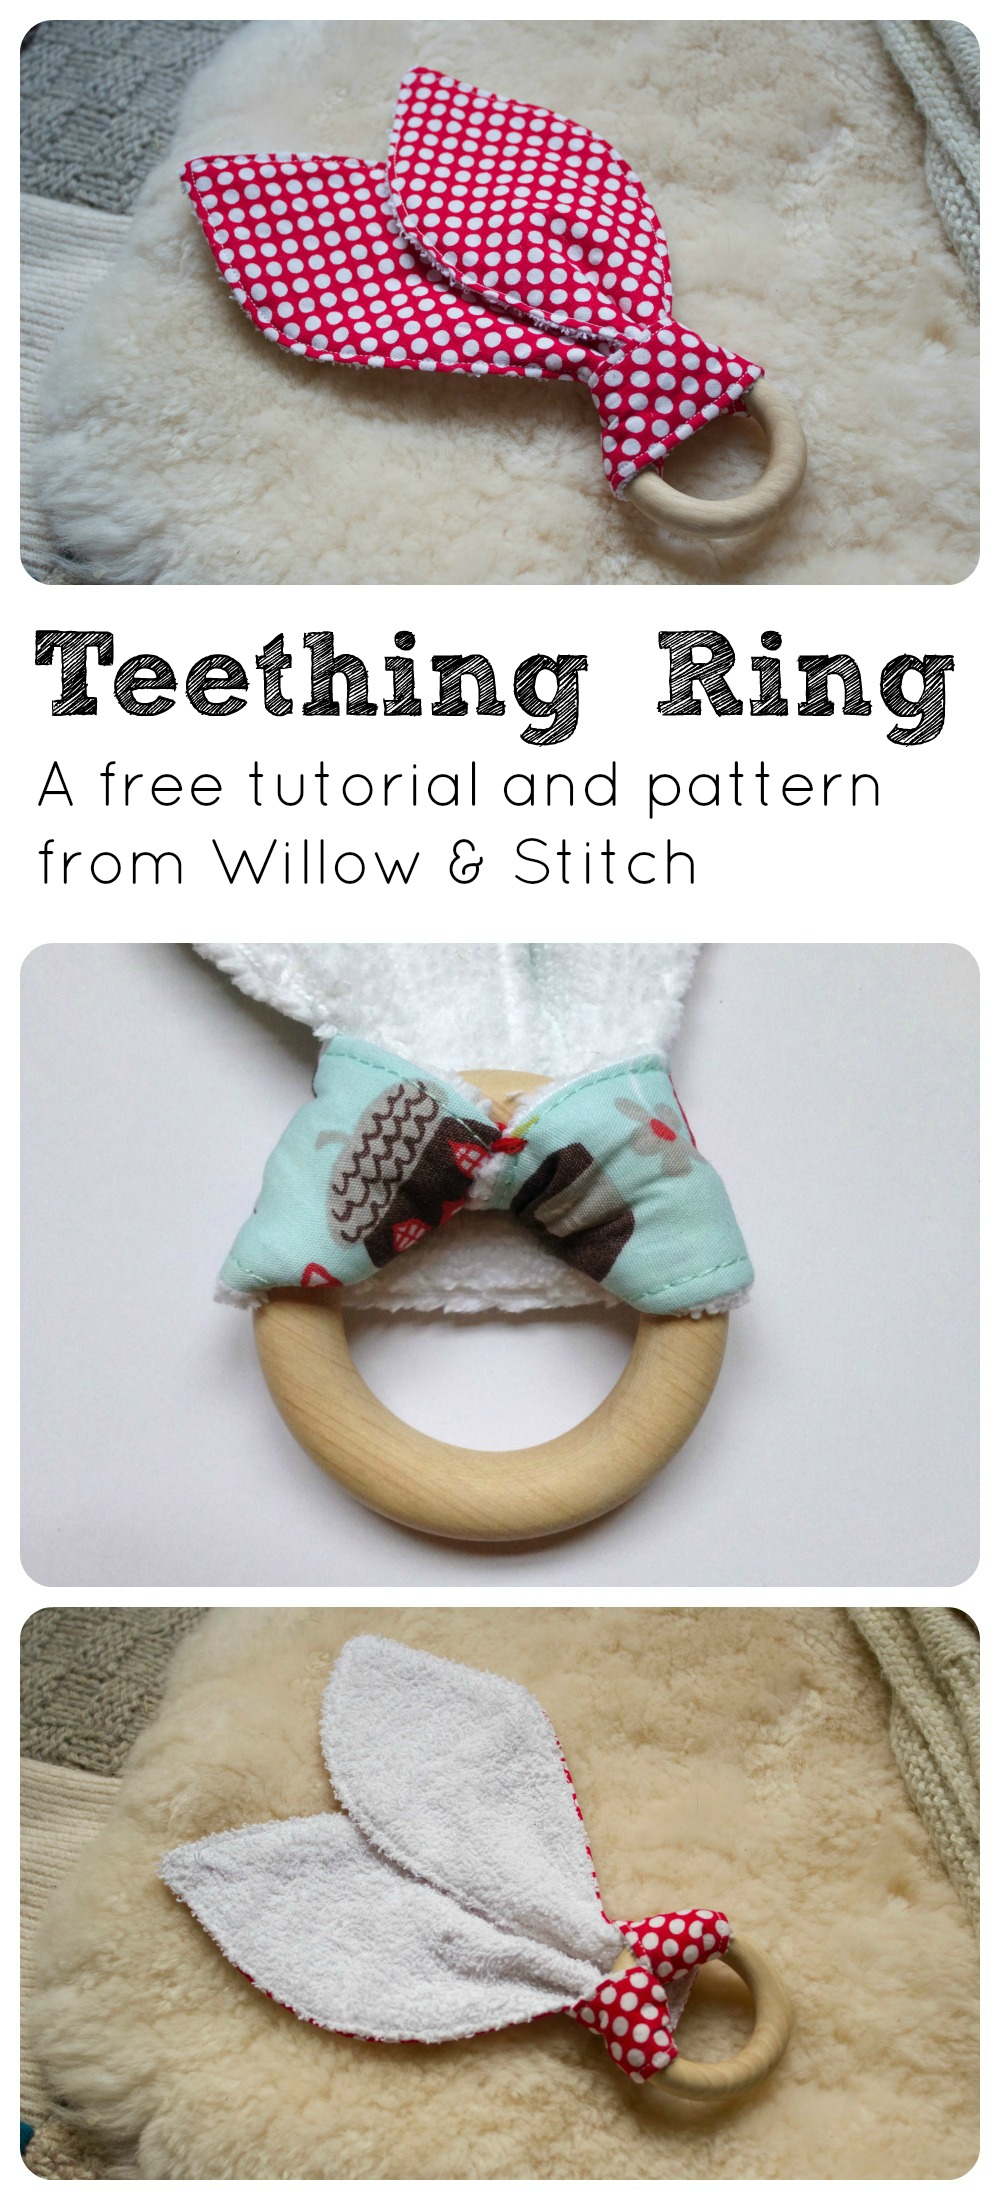 Free Teething Ring Tutorial and Pattern from Willow & Stitch